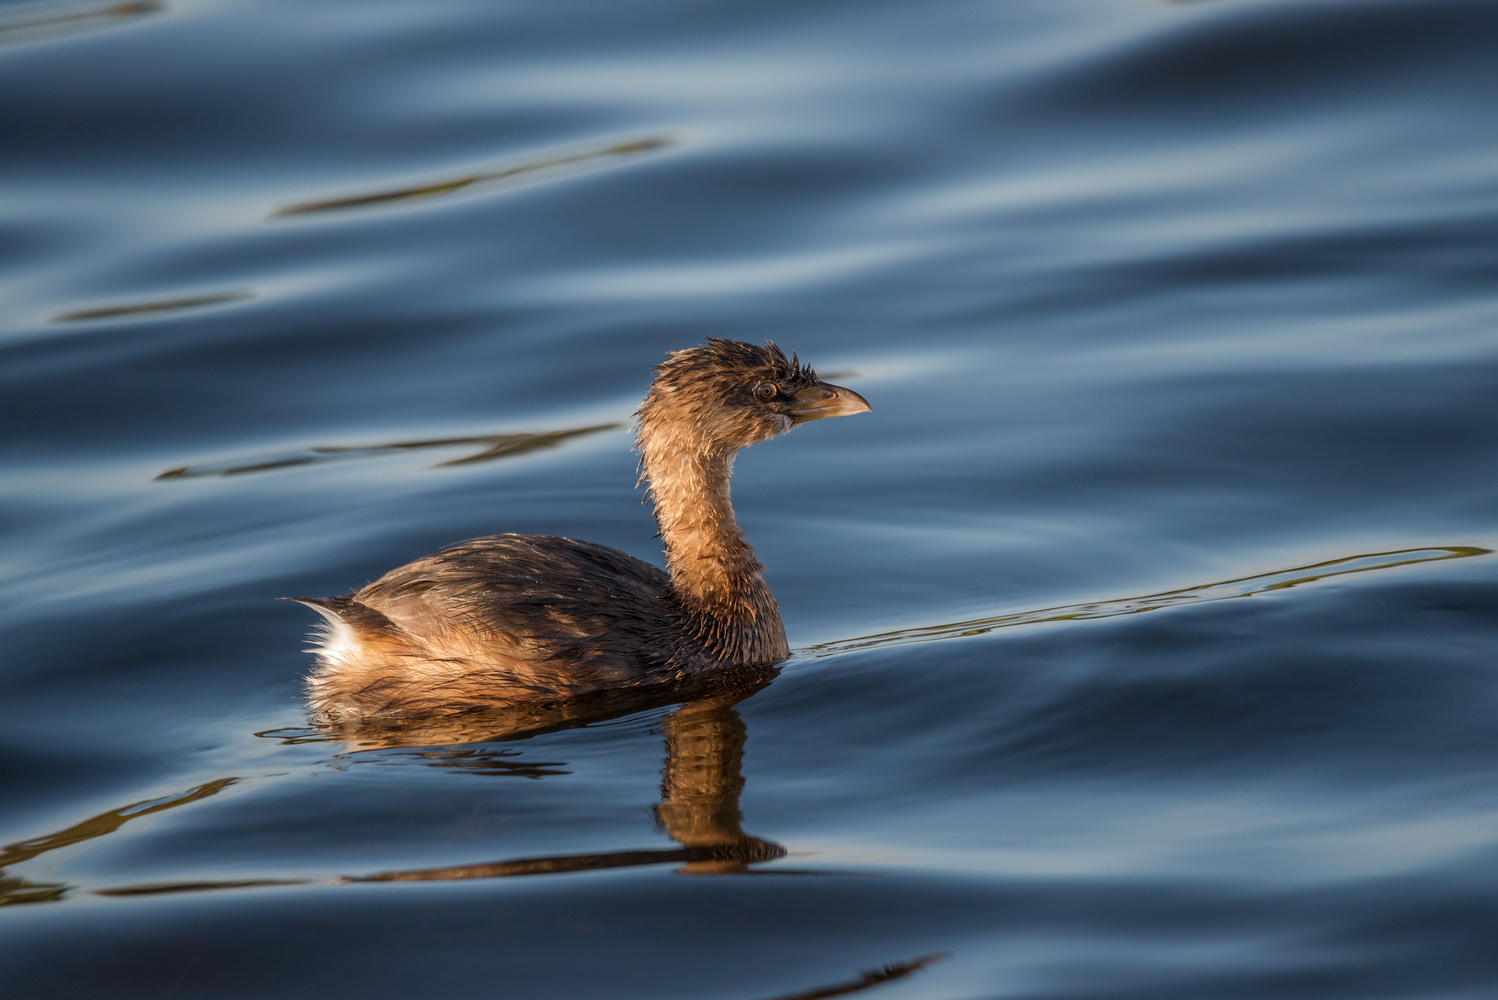 Pied-billed Grebe by Ira Rappaport